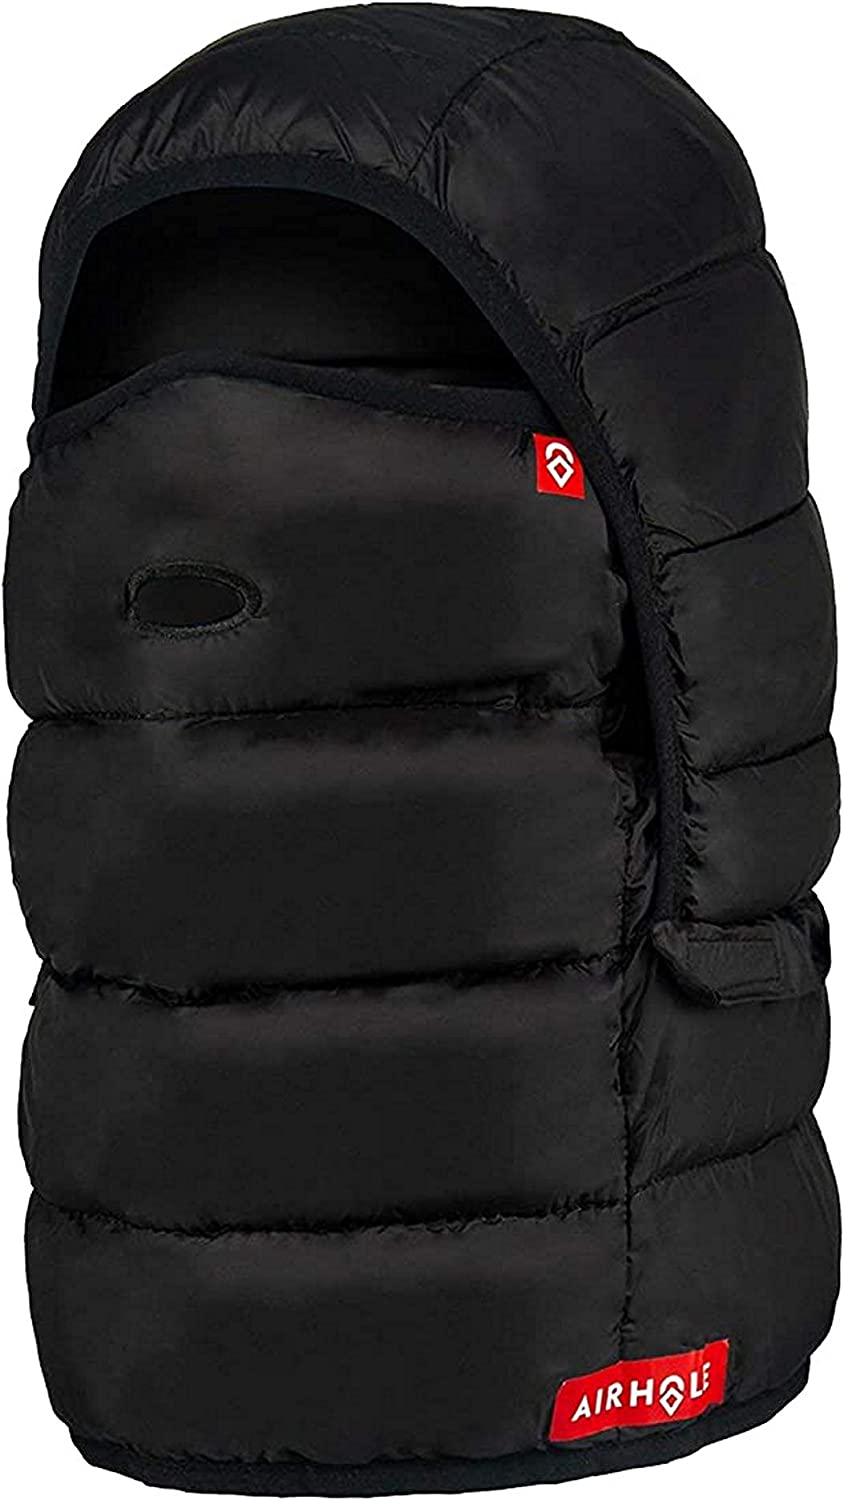 Airhole Unisex Airhood Packable Insulated Water Repellent Windproof Duck Down Balaclava Hood